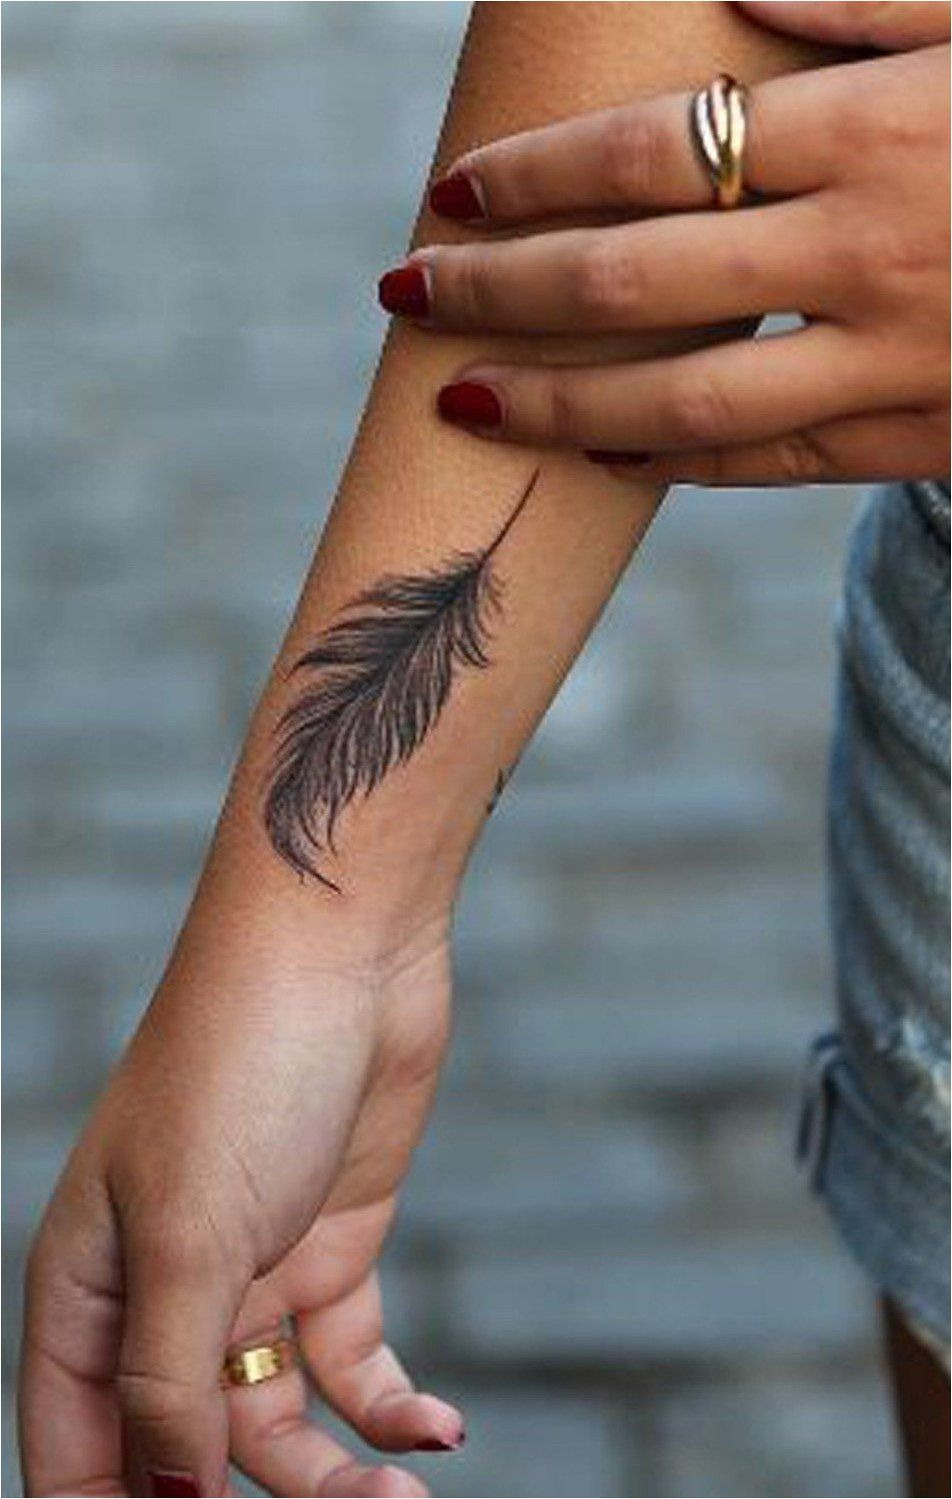 Tattoo Large Feather Wrist Tattoo Ideas For Women At Mybodiart Com Click To See More Feather Tattoos Feather Tattoo Arm Feather Tattoo Wrist